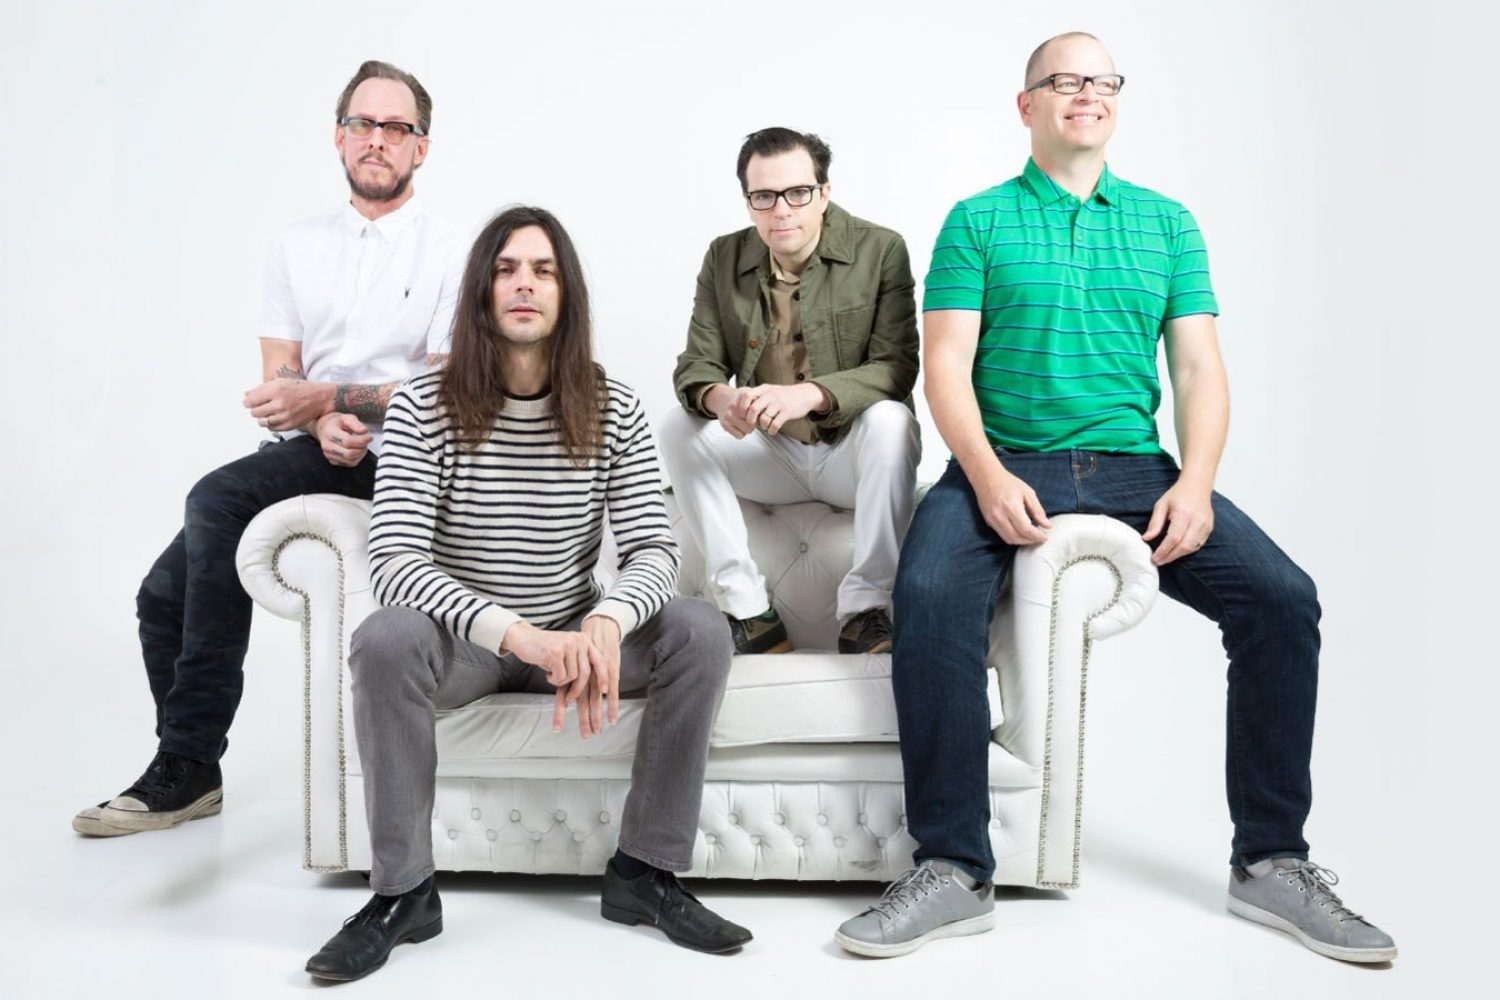 Weezer: Kings of the world